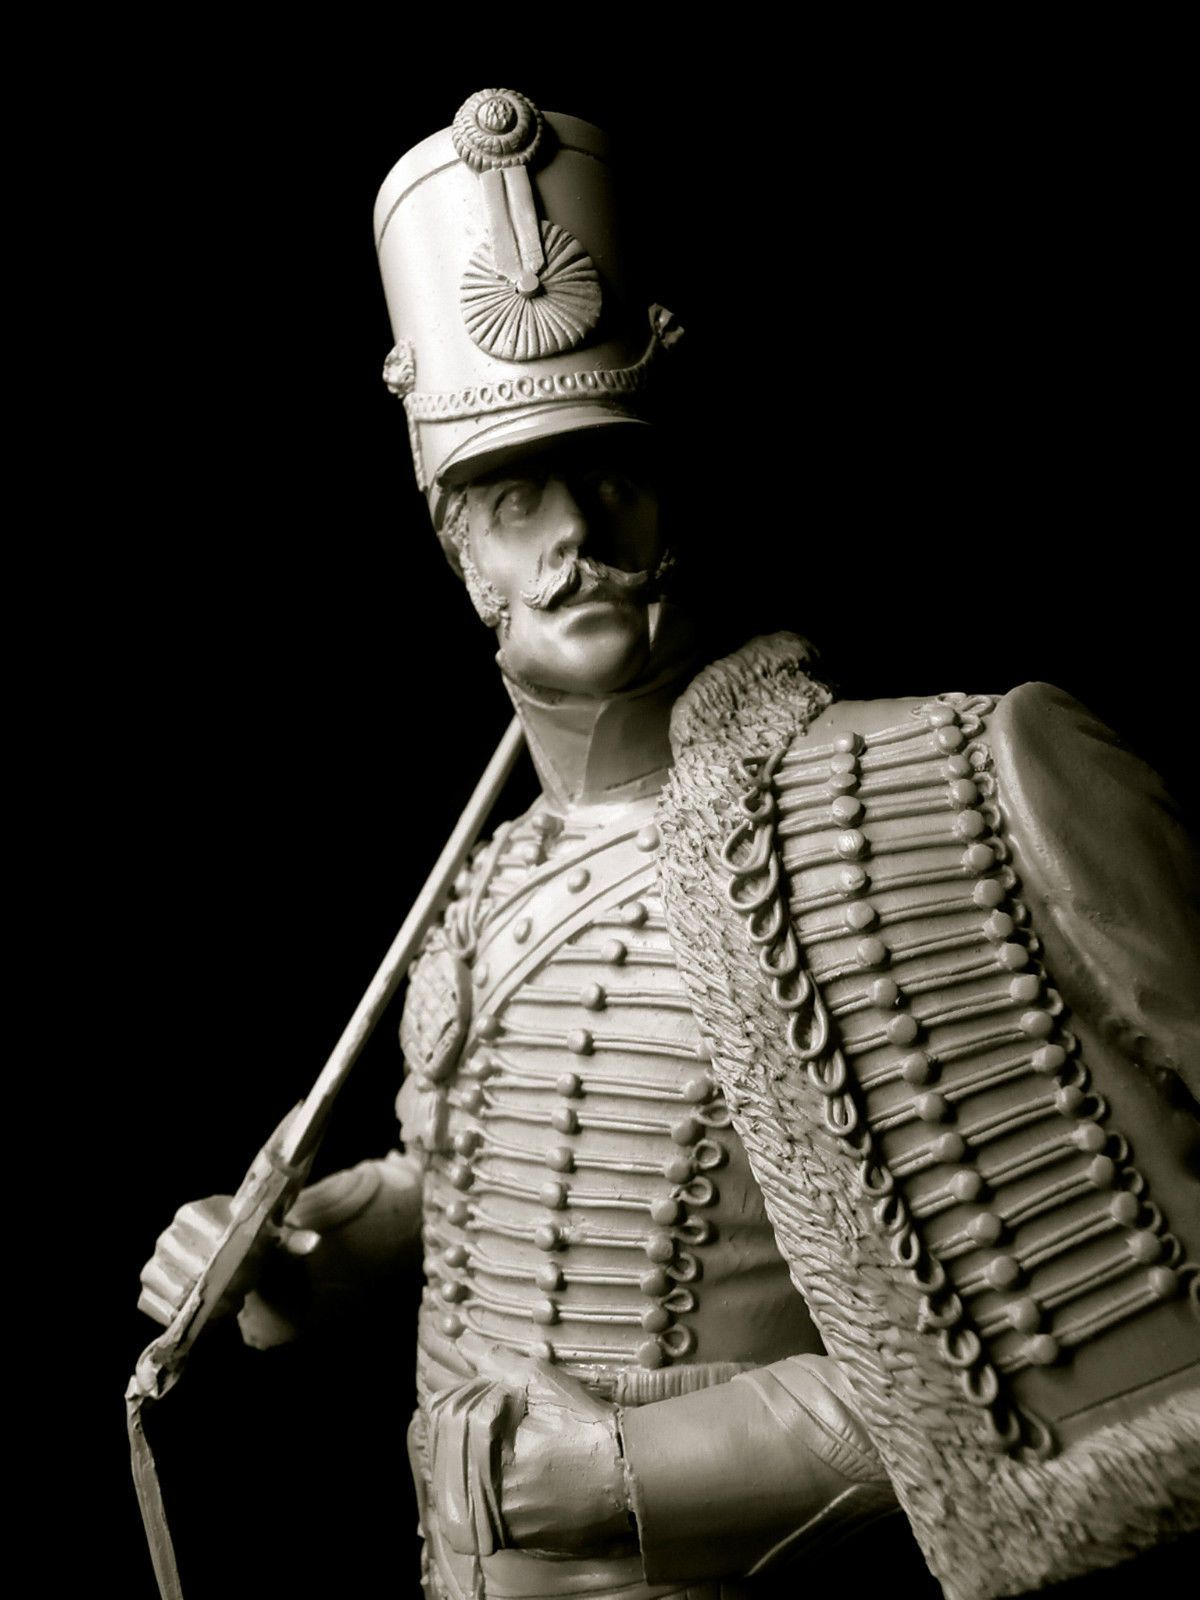 1 9th Scale Resin Bust Captain of Hussars in Rouleau w Drawn Sabre M Corry   eBay